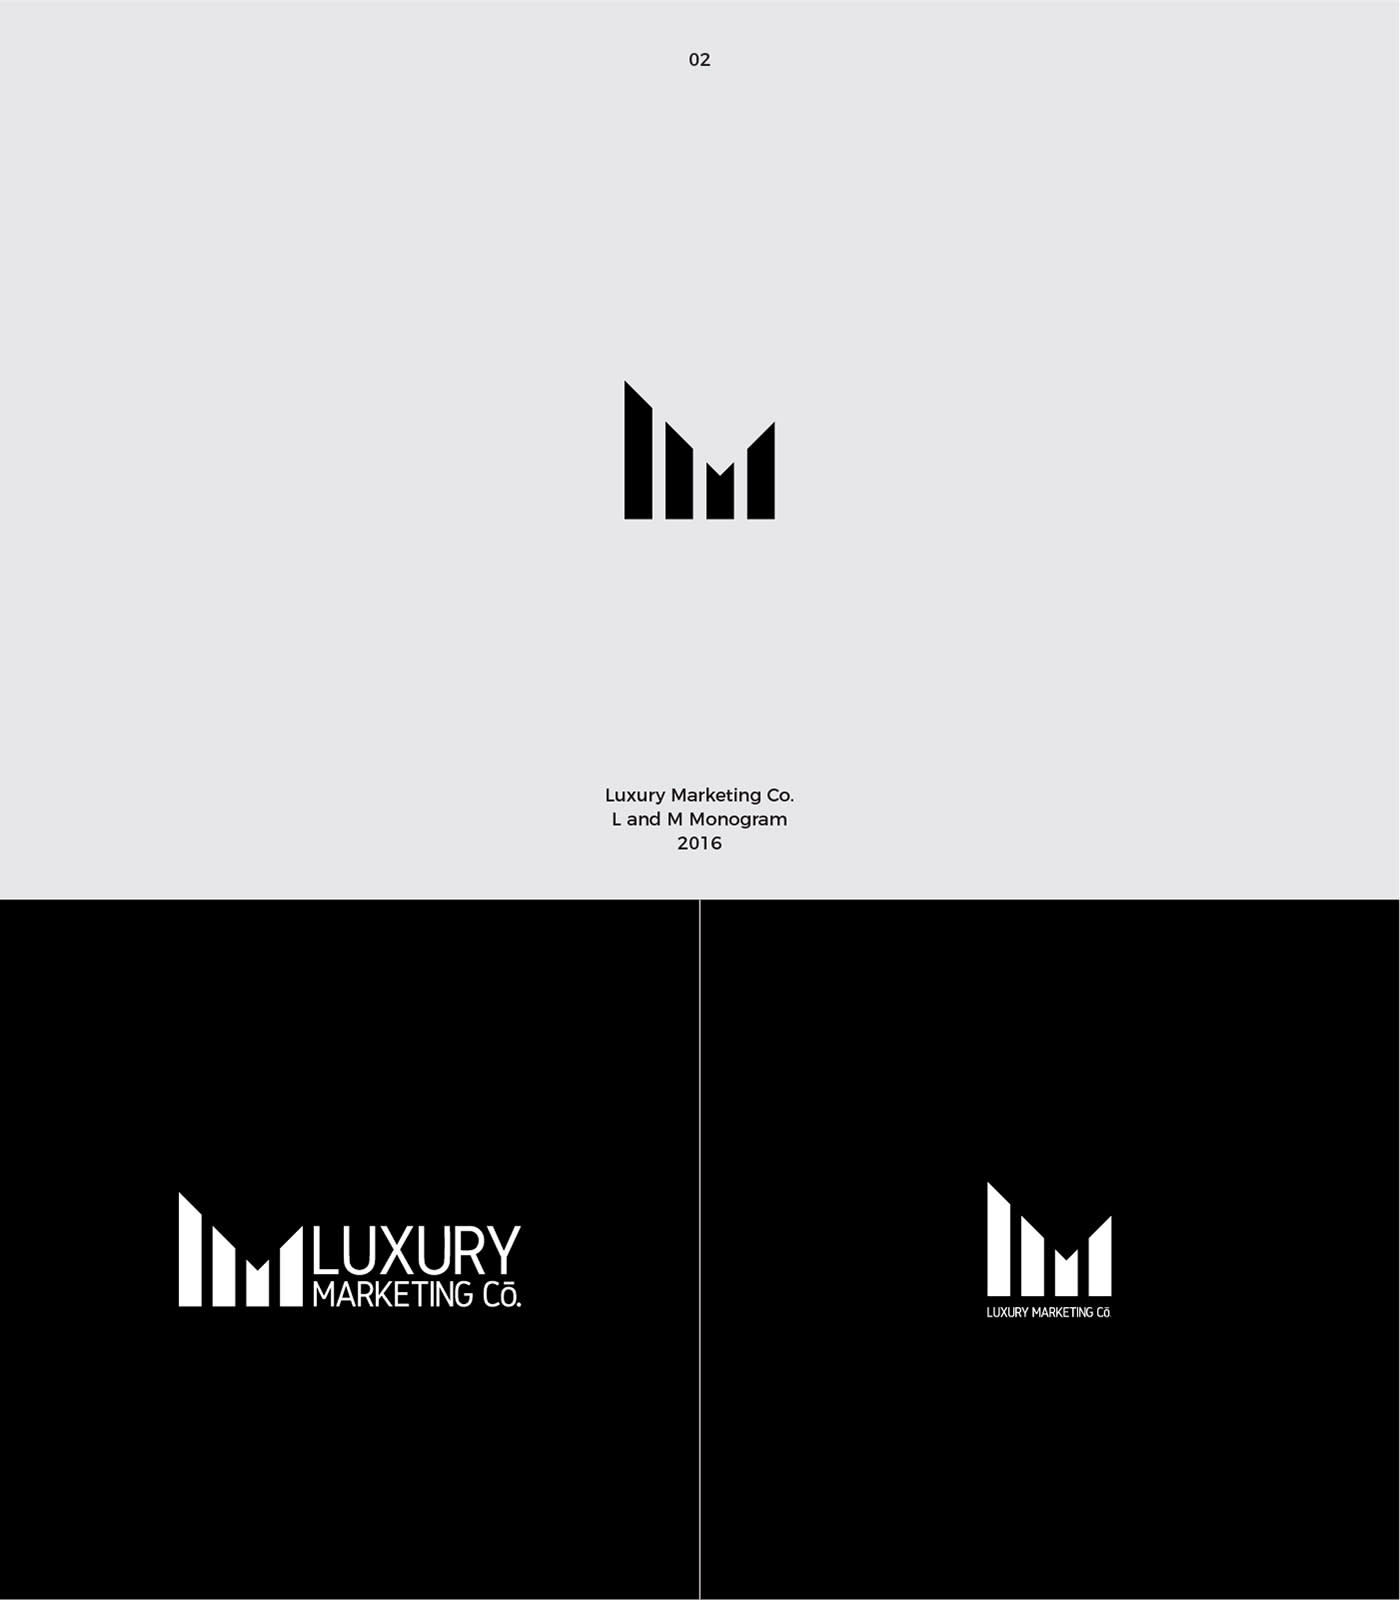 Logo and Branding for Luxury Marketing Co.